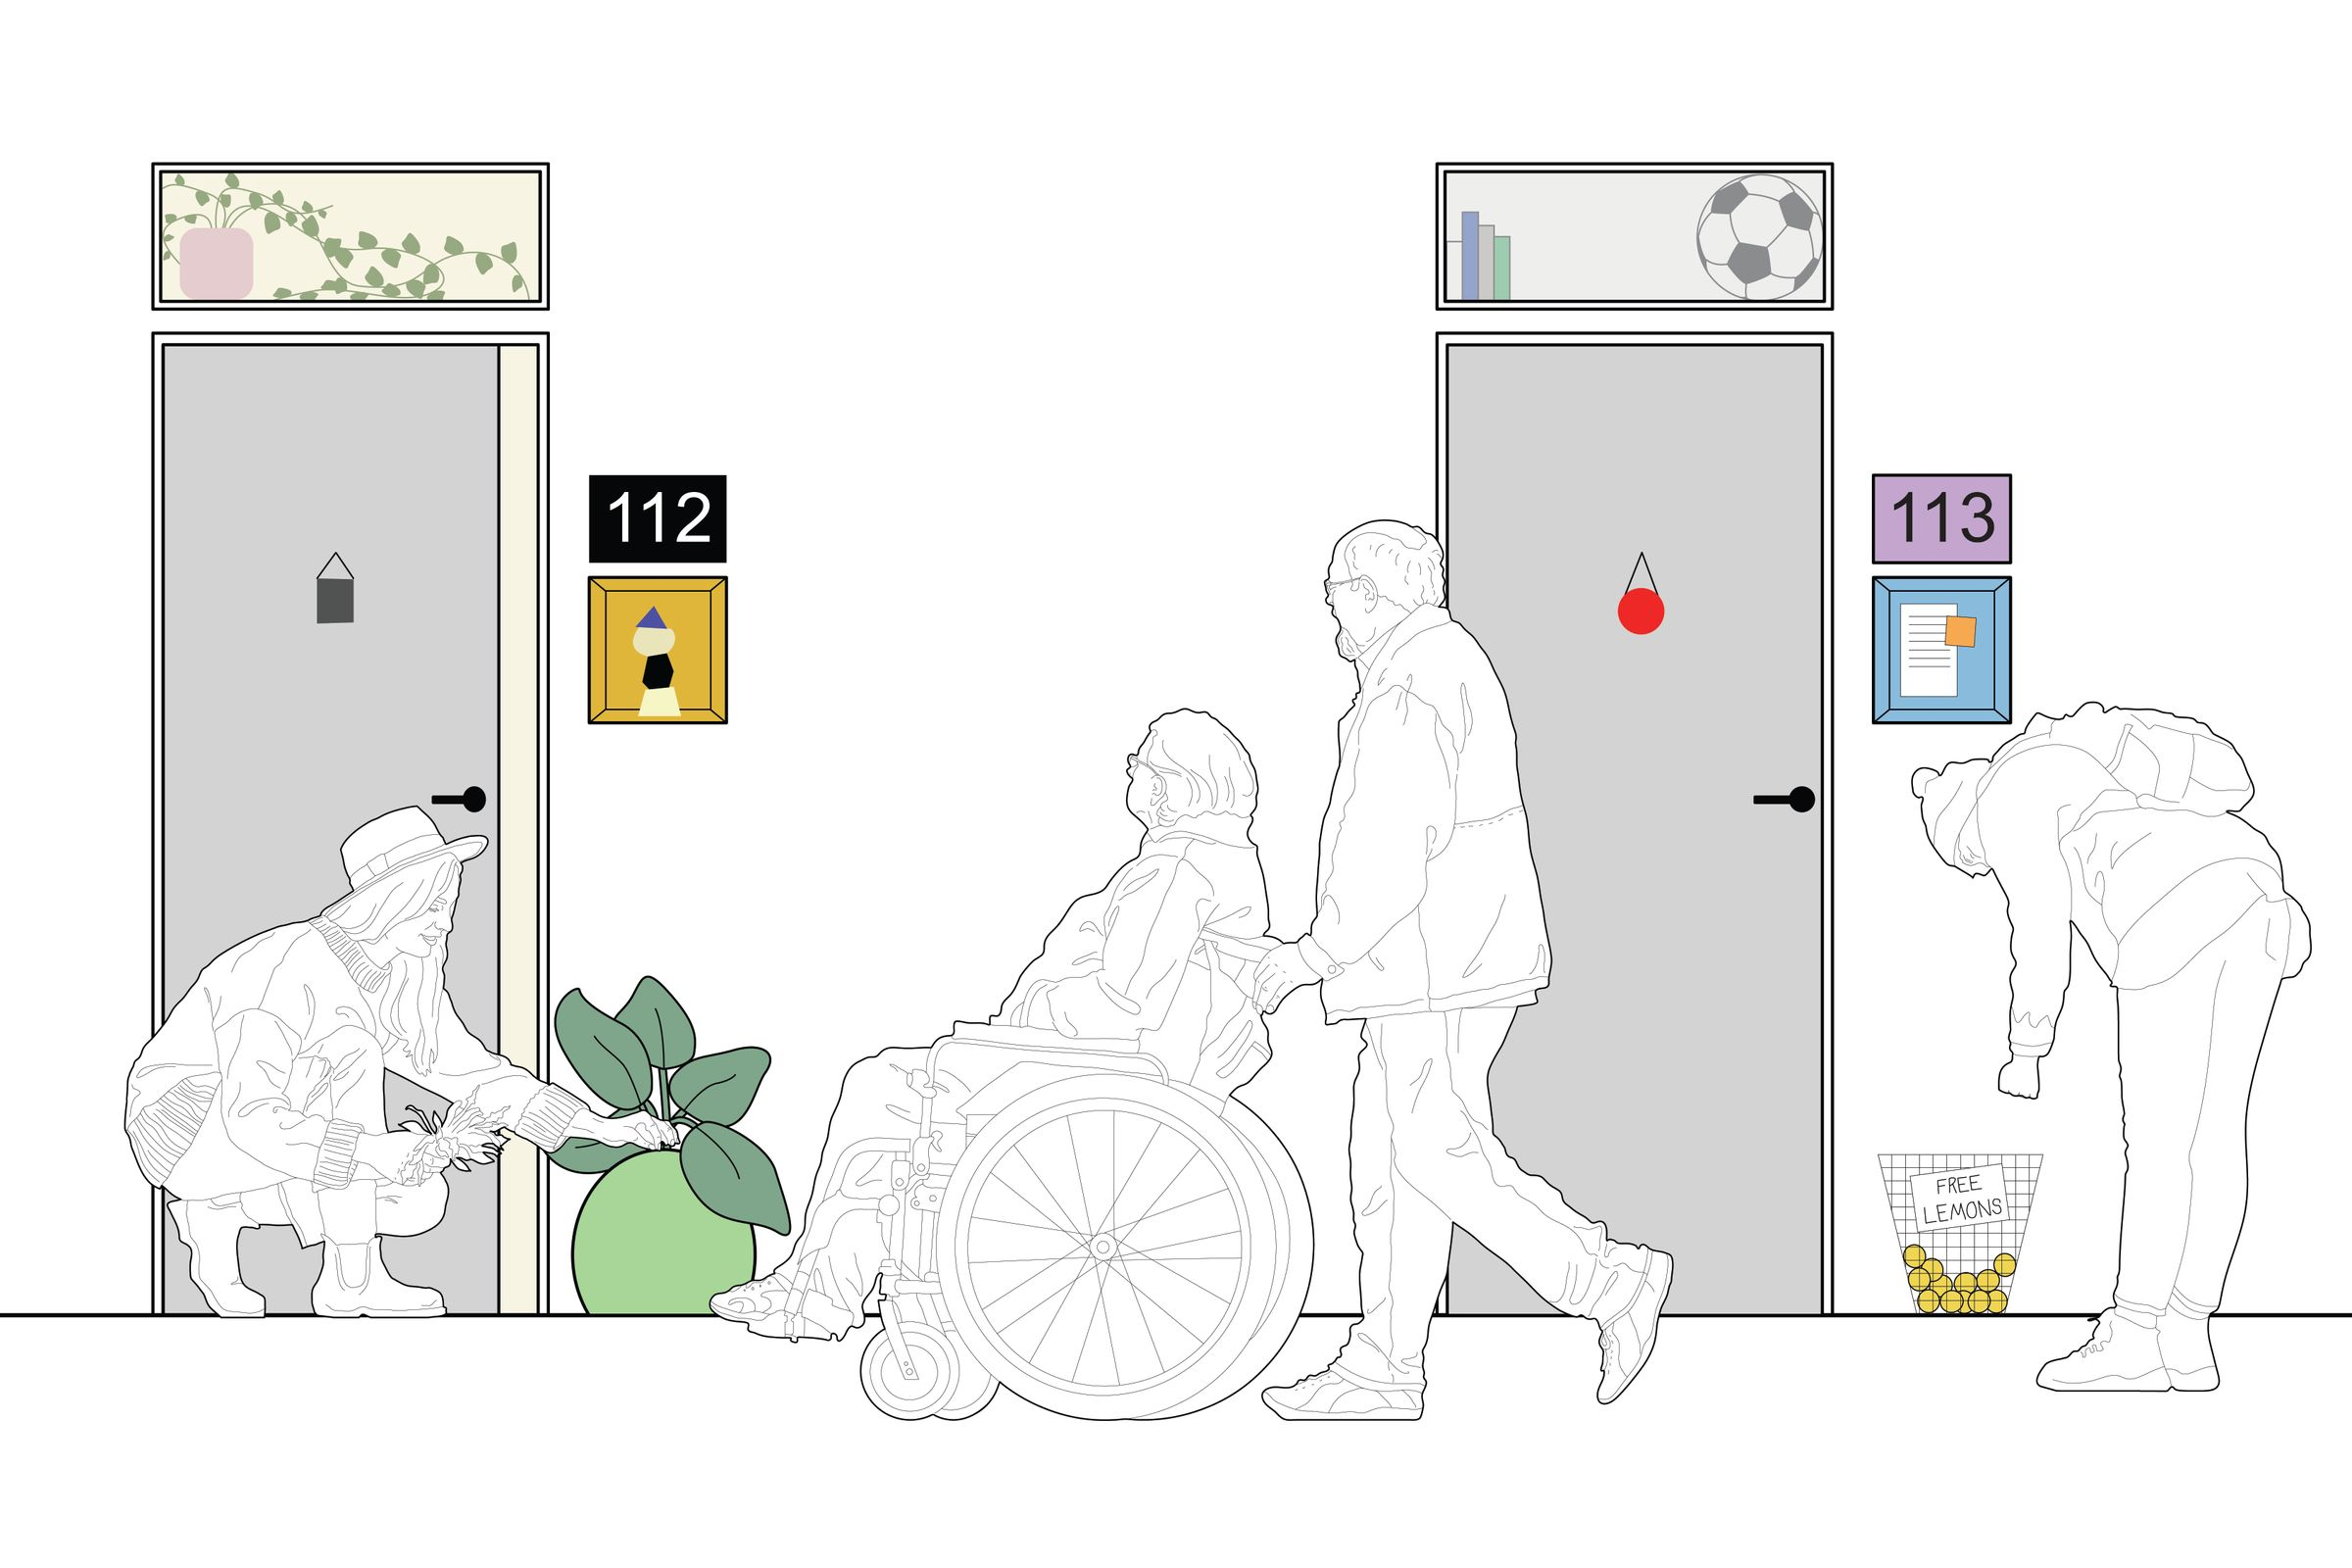 The illustration shows two apartment doors, each personalised with various objects and design features to increase encounters. Each door has a window above allowing residents to see whether to light is on in a neighbours apartment. There is a woman watering a pot plant that she keeps outside her front door, she is engaged in conversation with a couple walking past.